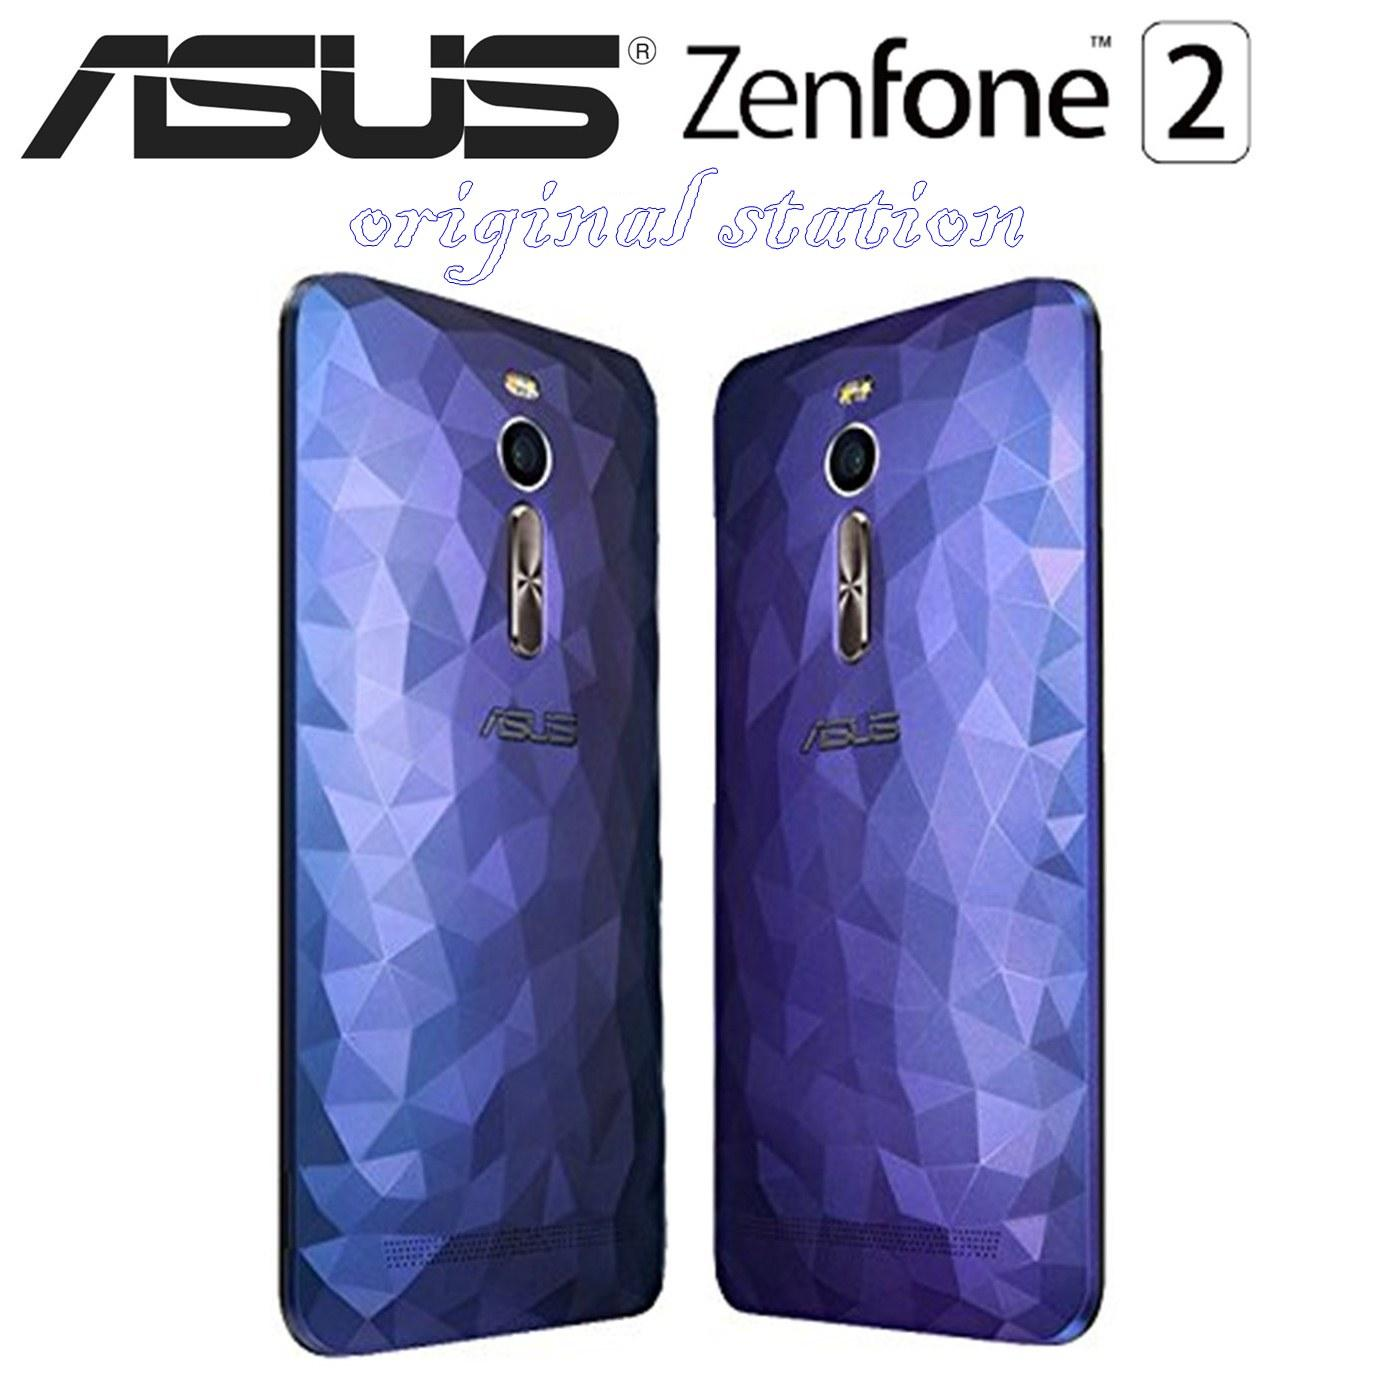 Asus Backdoor Illusion Original Casing for Zenfone 2 ZE551ML 5.5 Inch Color Edition - Original